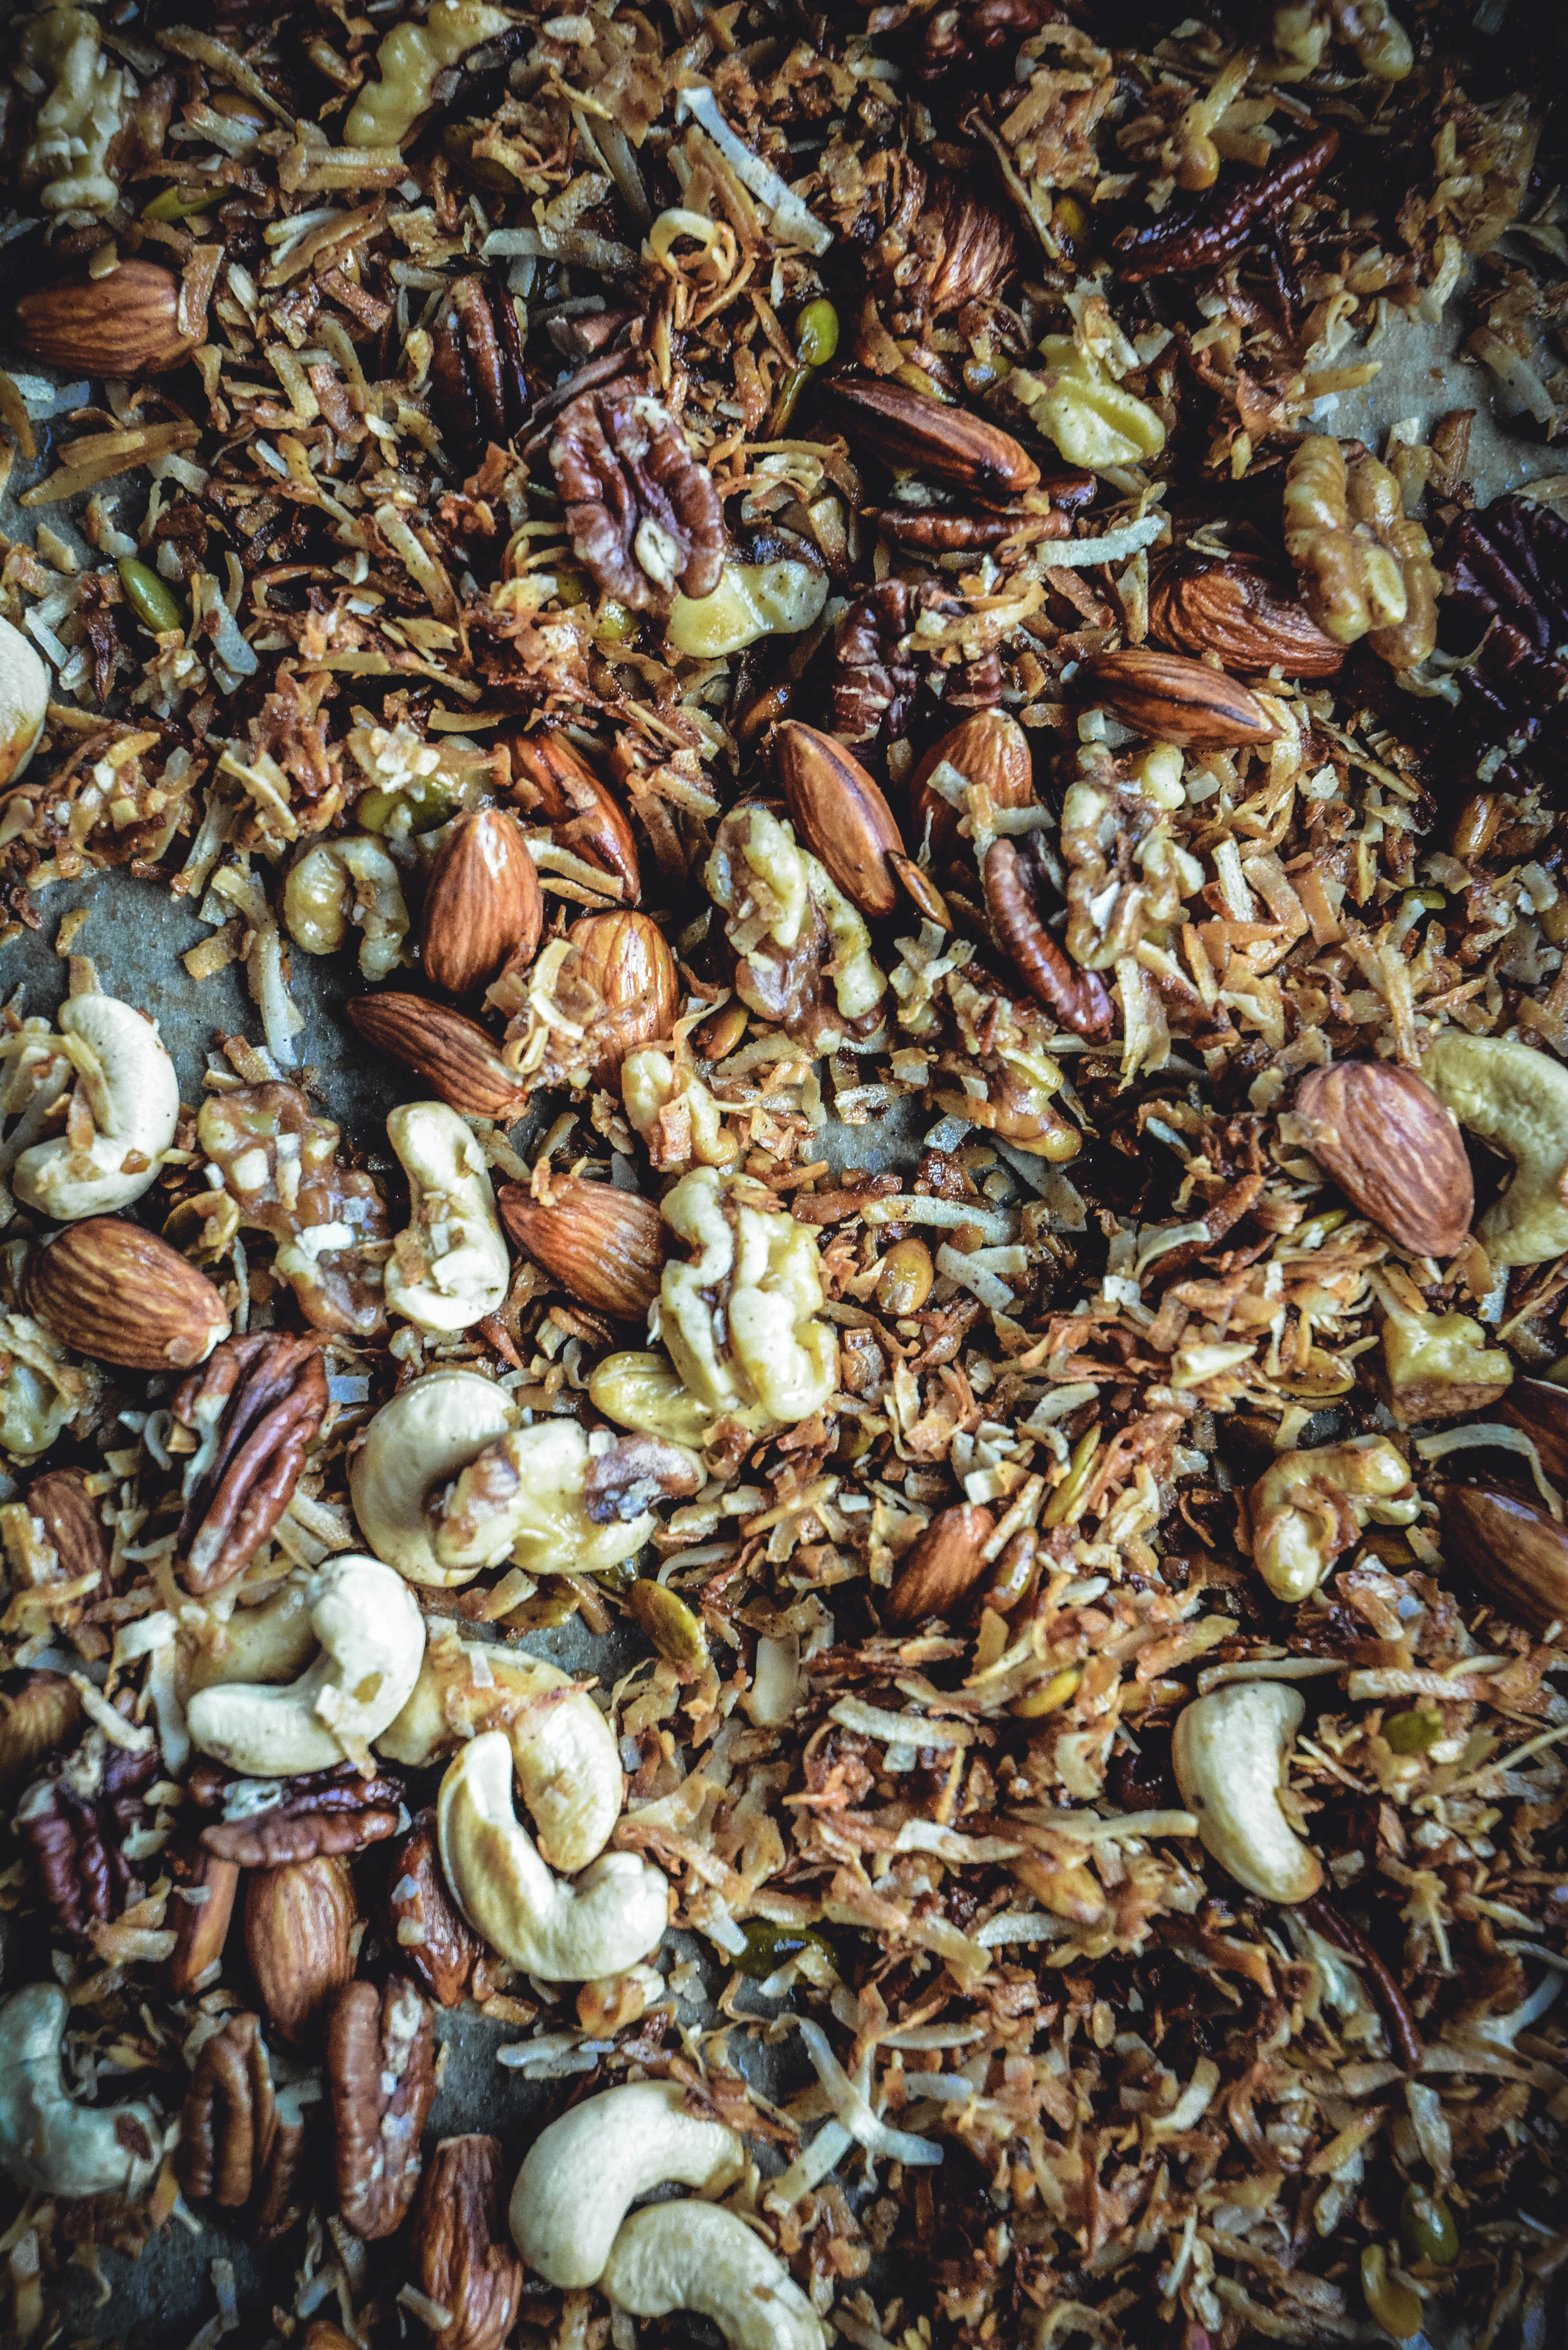 walnuts, pecans, almonds, coconut flakes, cashews, pumpkin seeds